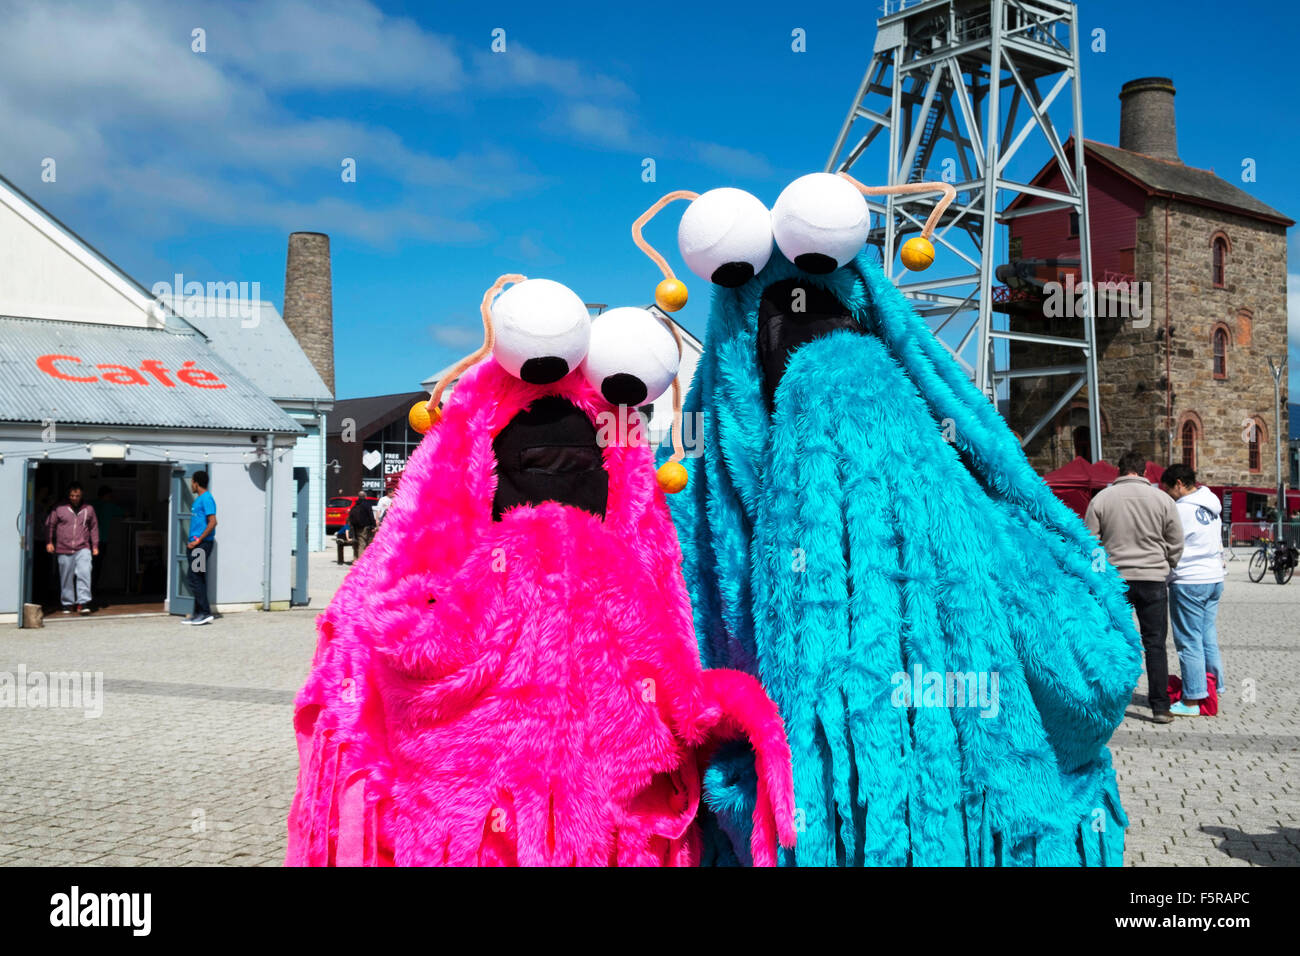 Yip Yip aliens from Sesame Street TV programme at Geekfest, Cornwall, UK - Stock Image